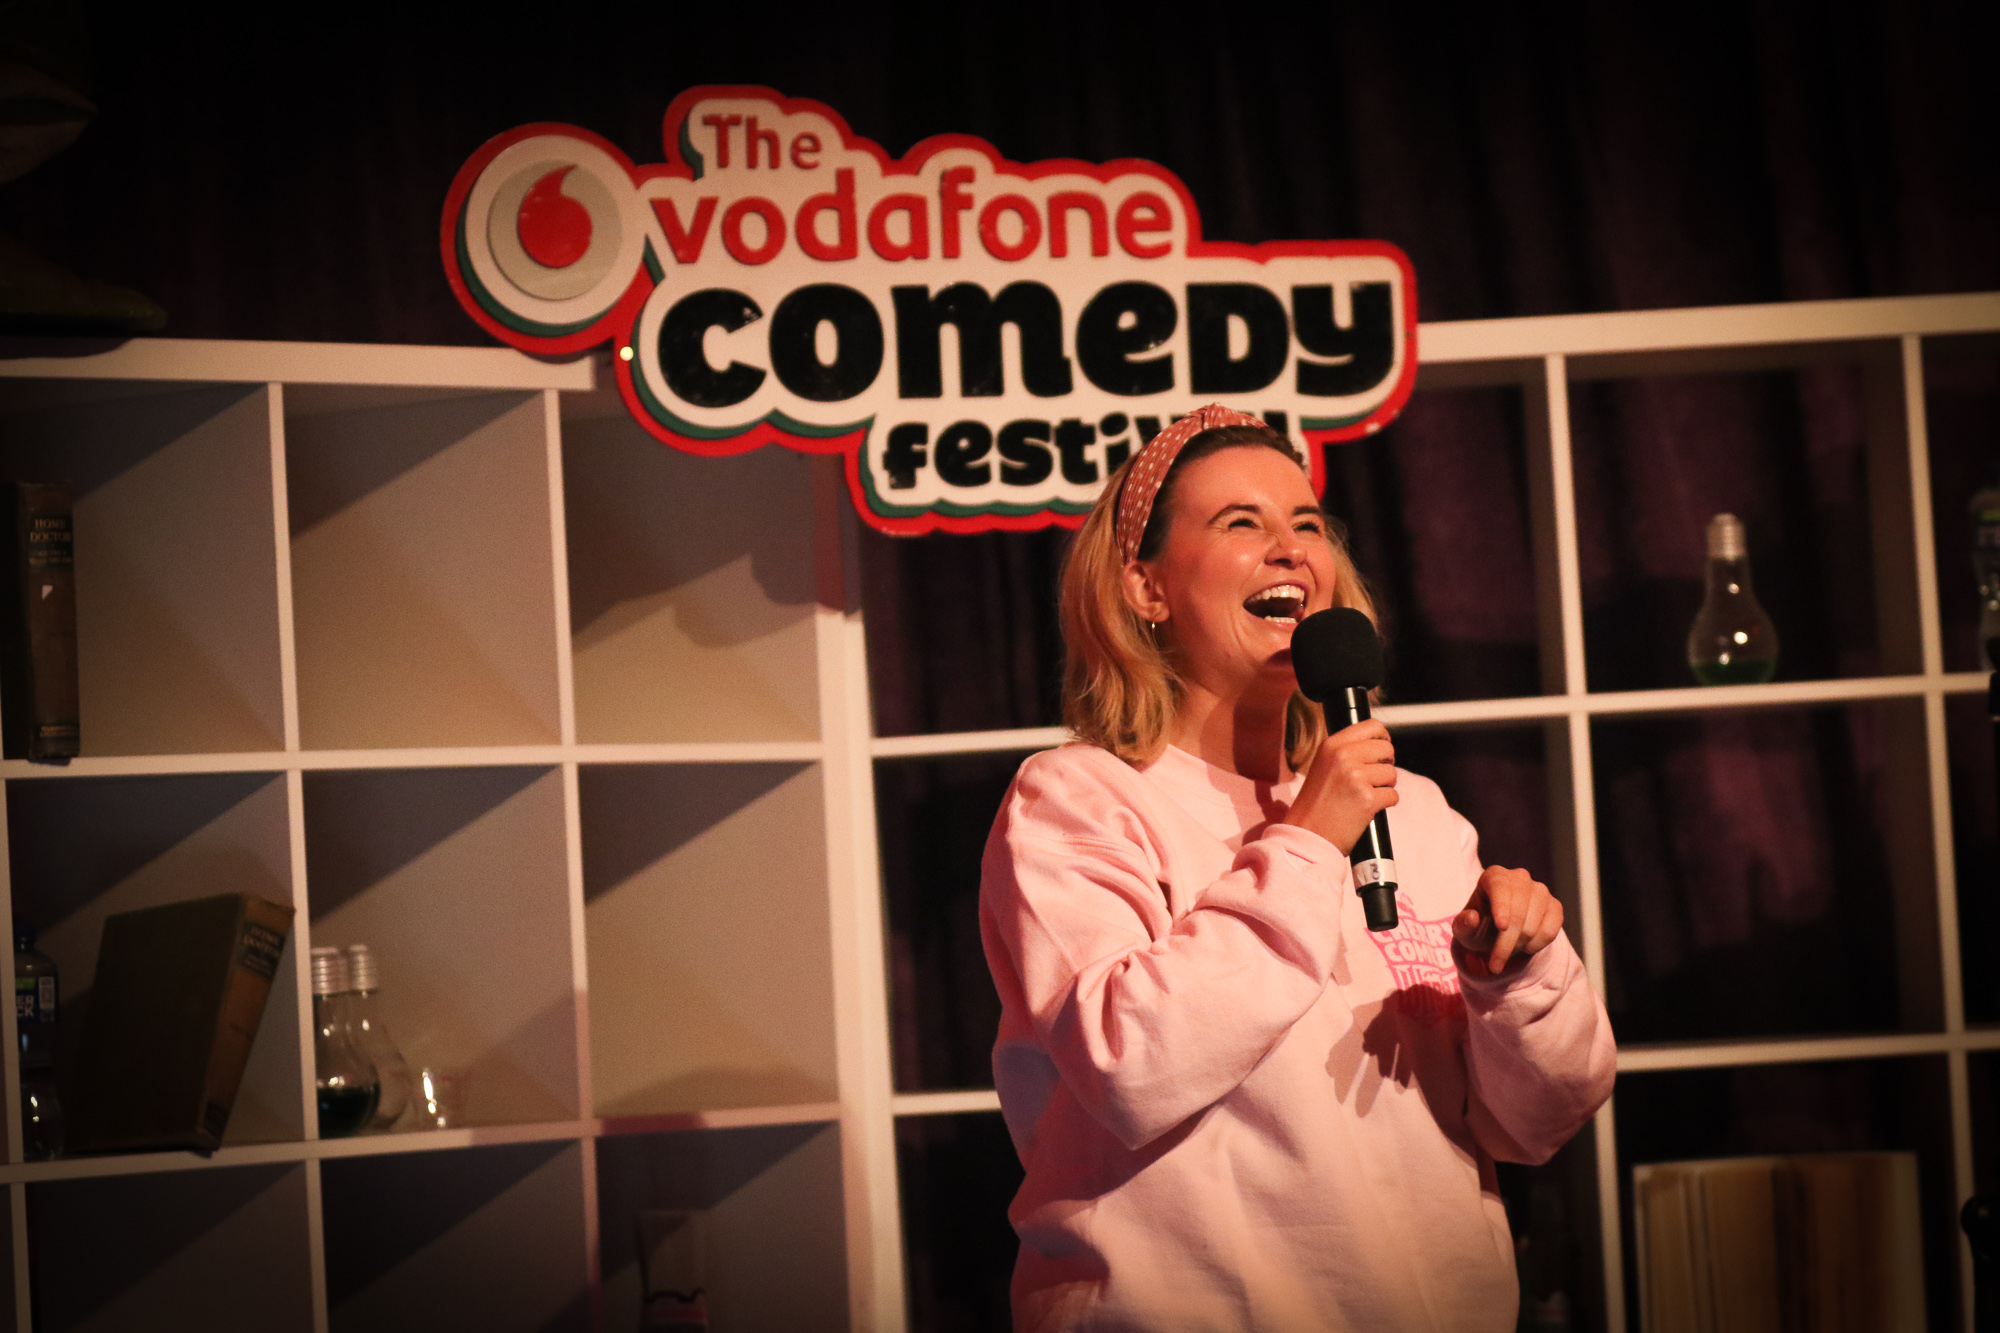 Cherry Comedy at the Vodafona Comedy Festival 2019 (37).jpg